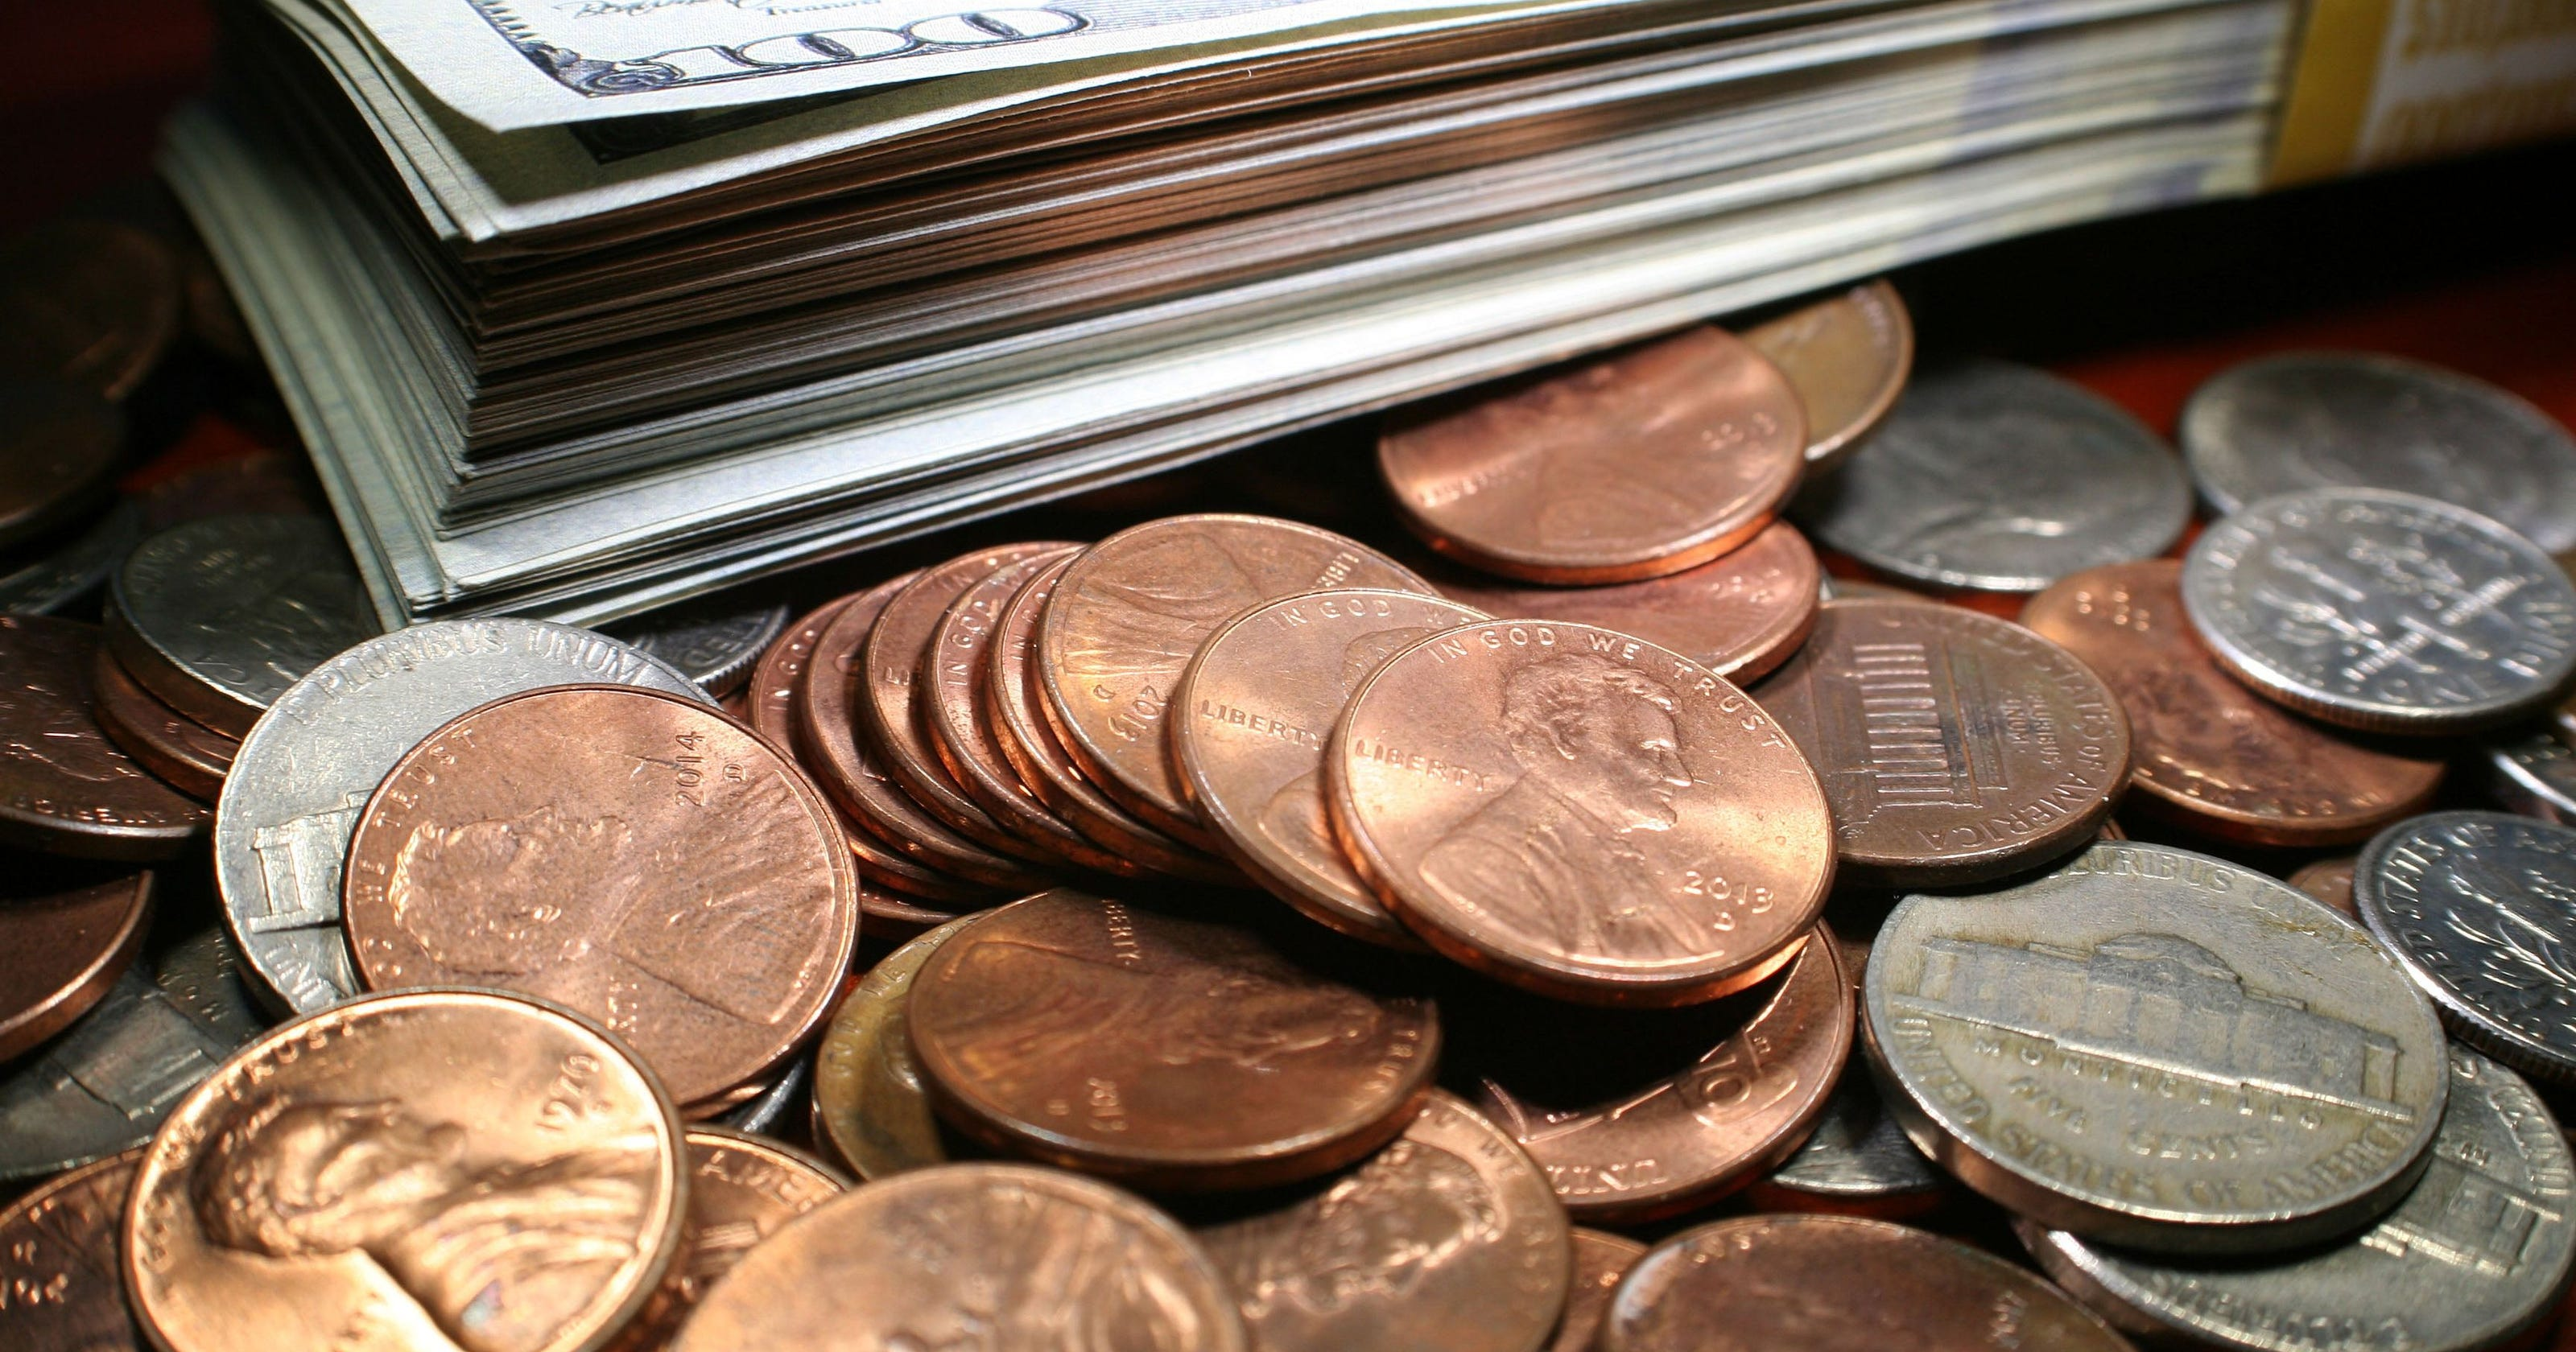 COVID-19 shutdowns have created shortage of coins